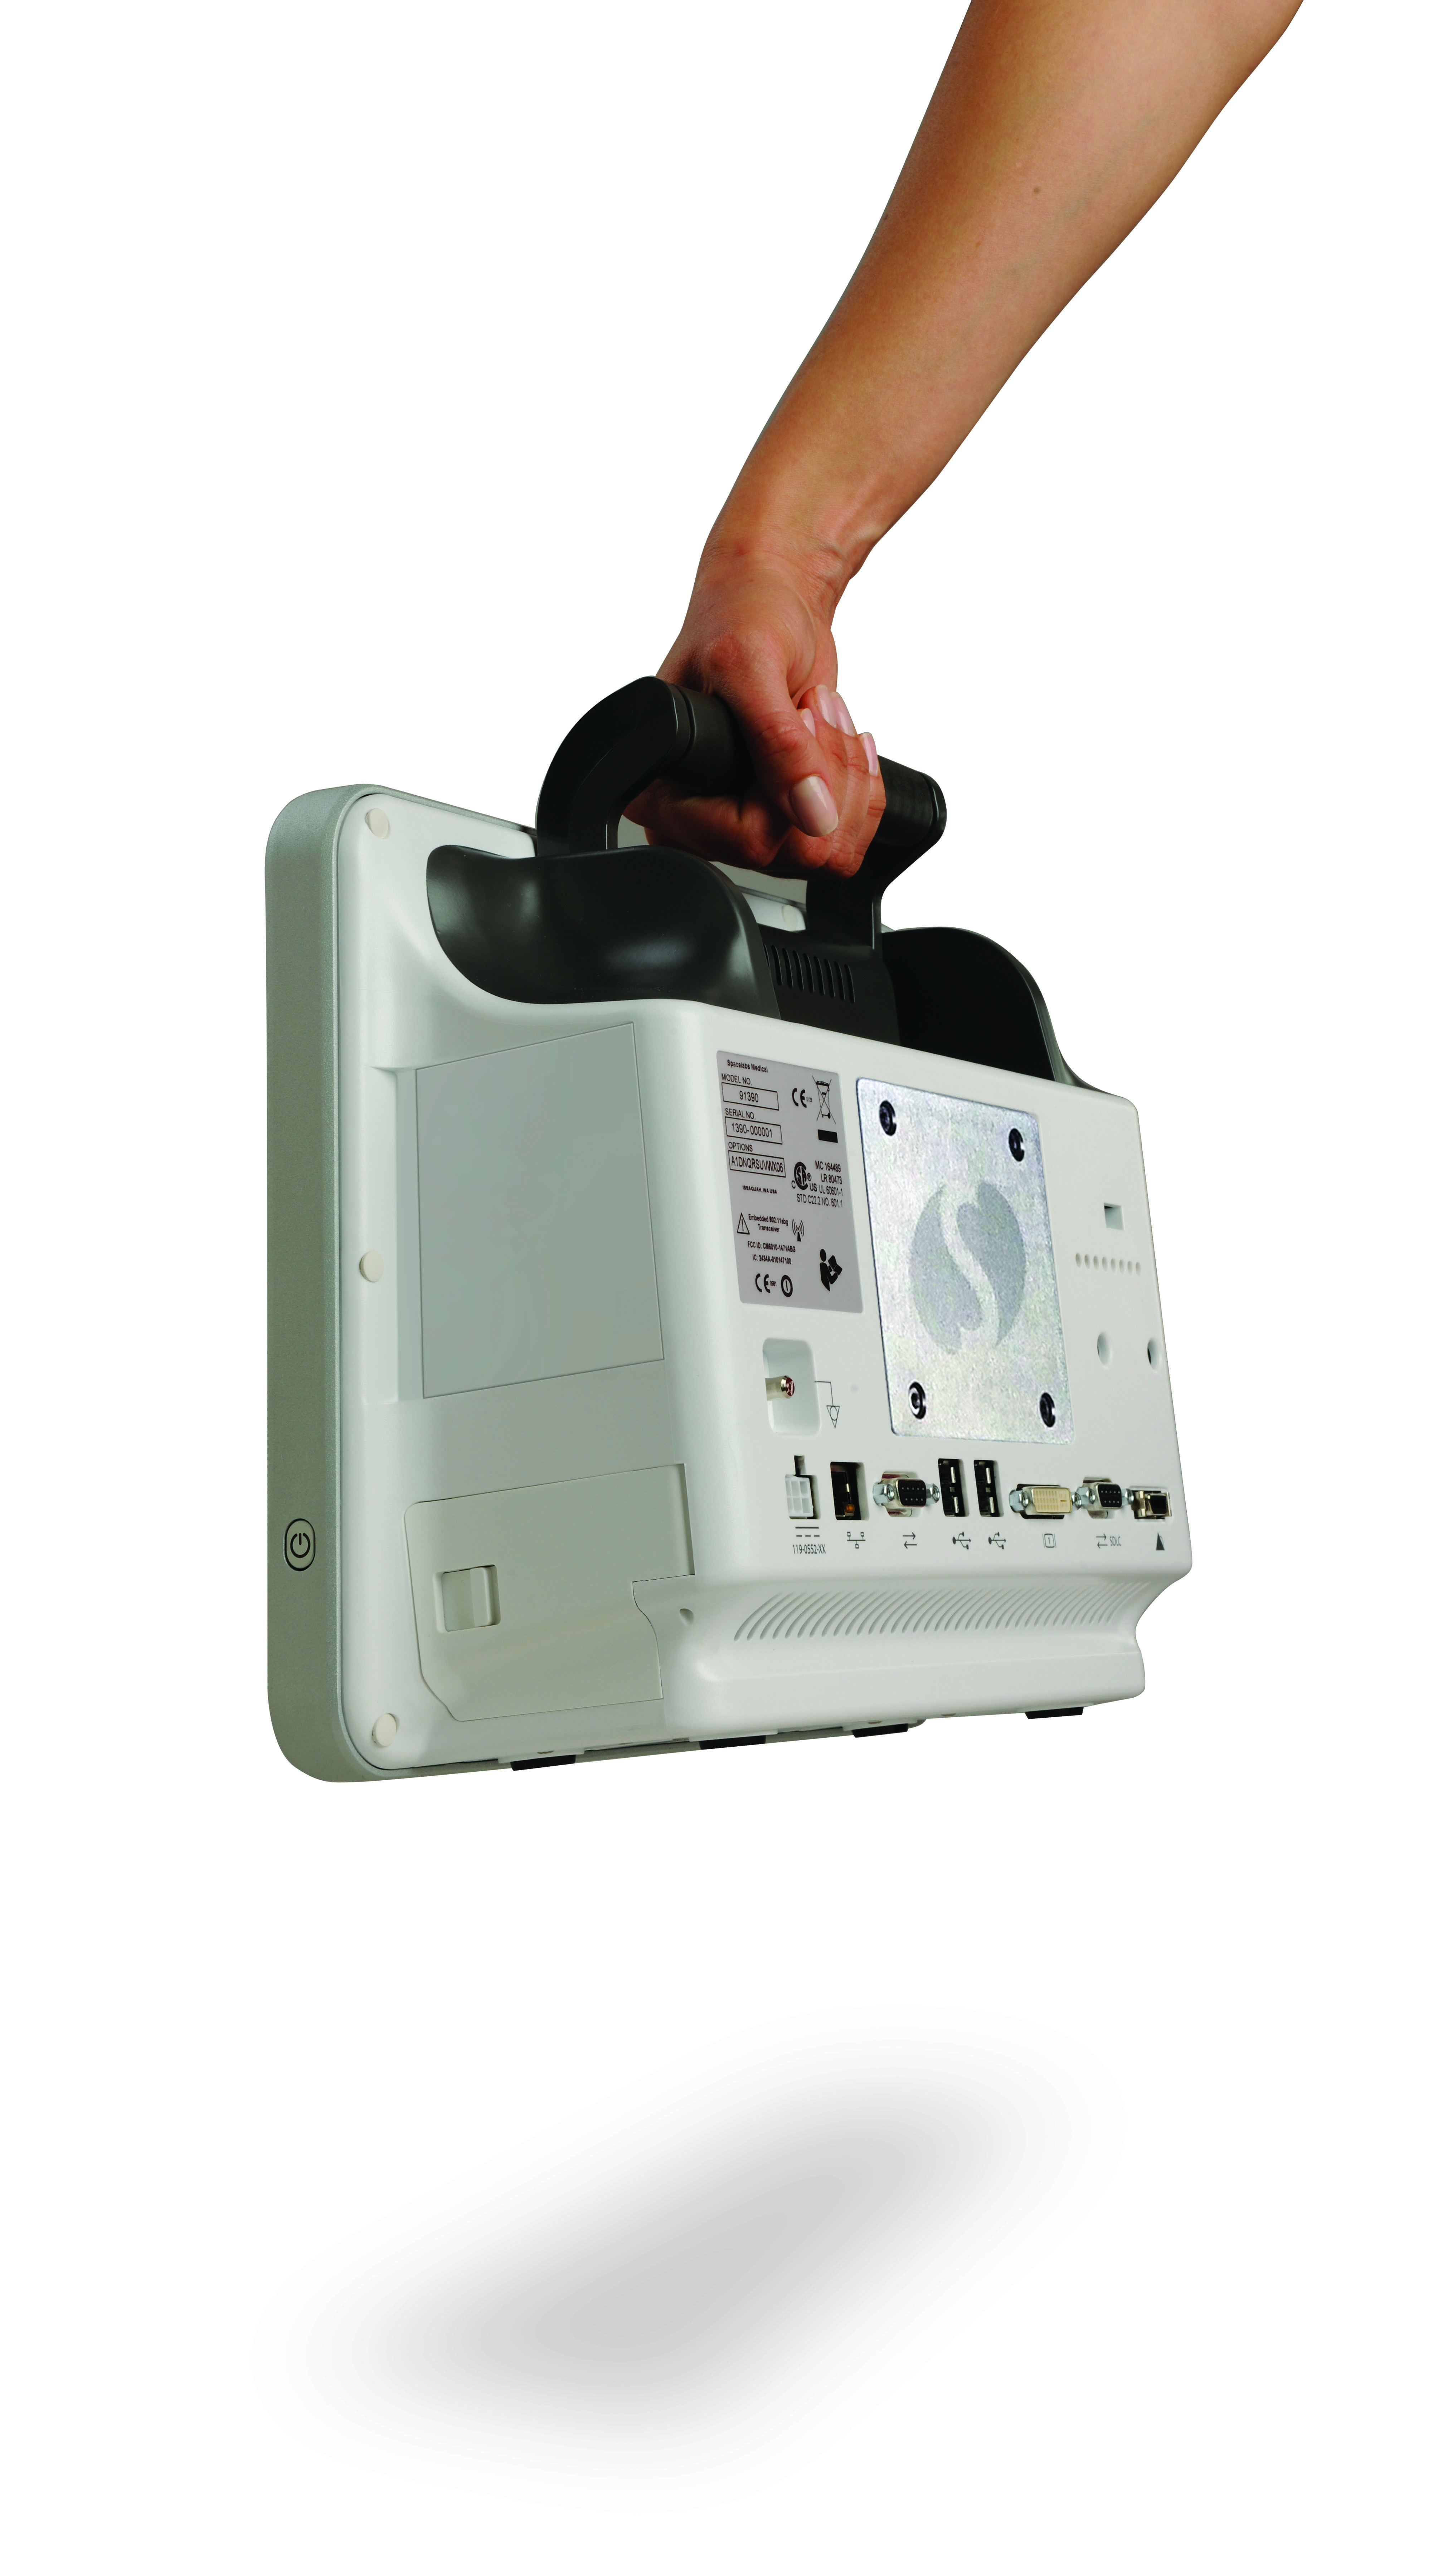 qube patient monitor, carry handle